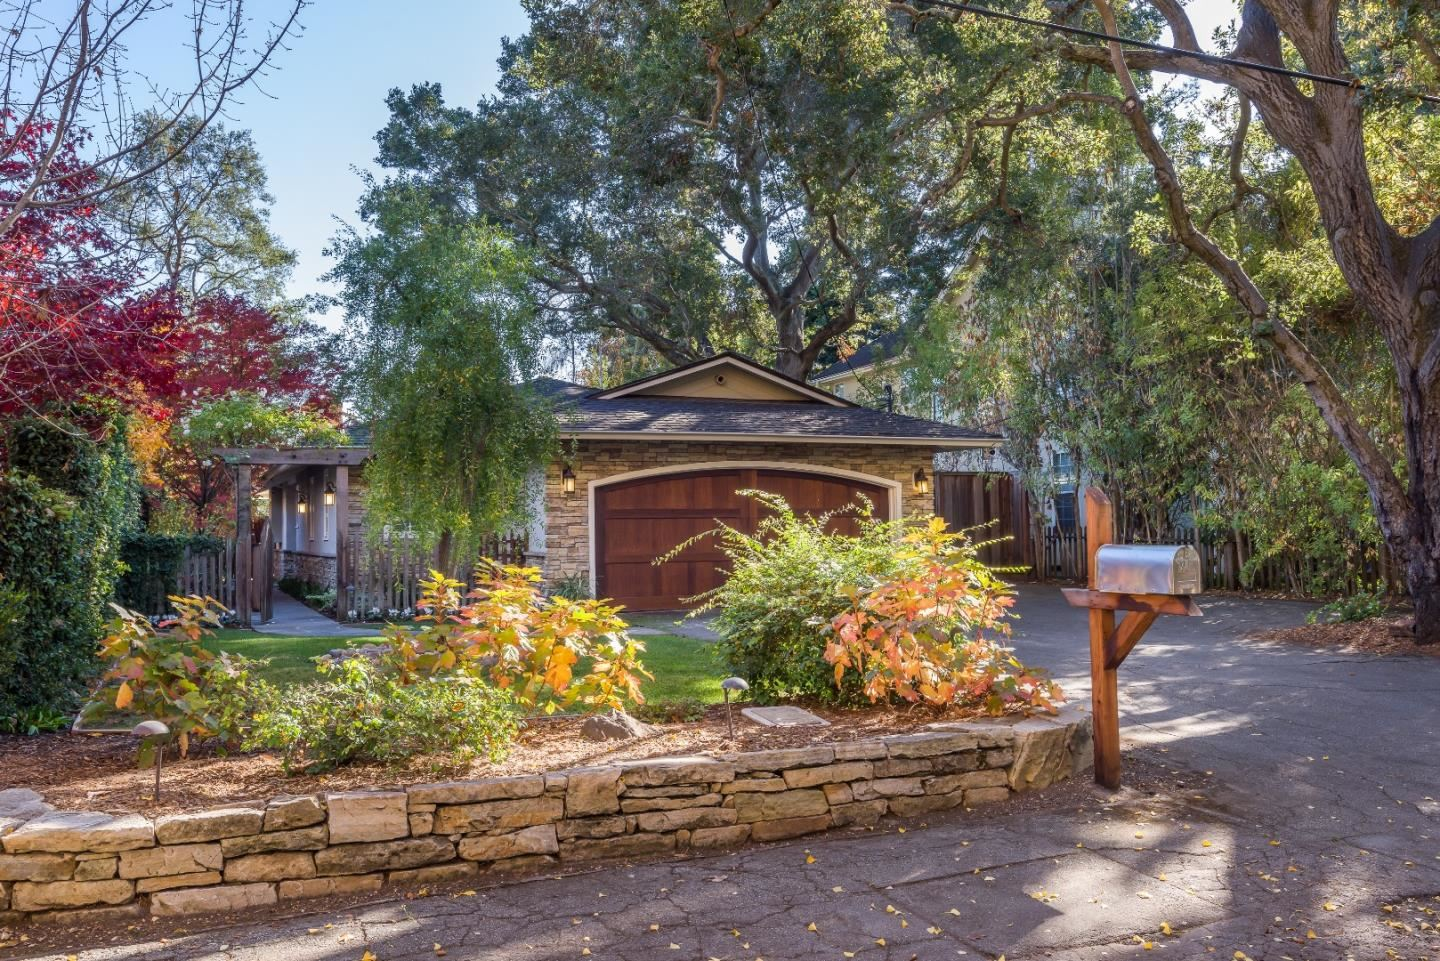 Photo for 66 Maple AVE, ATHERTON, CA 94027 (MLS # ML81821691)